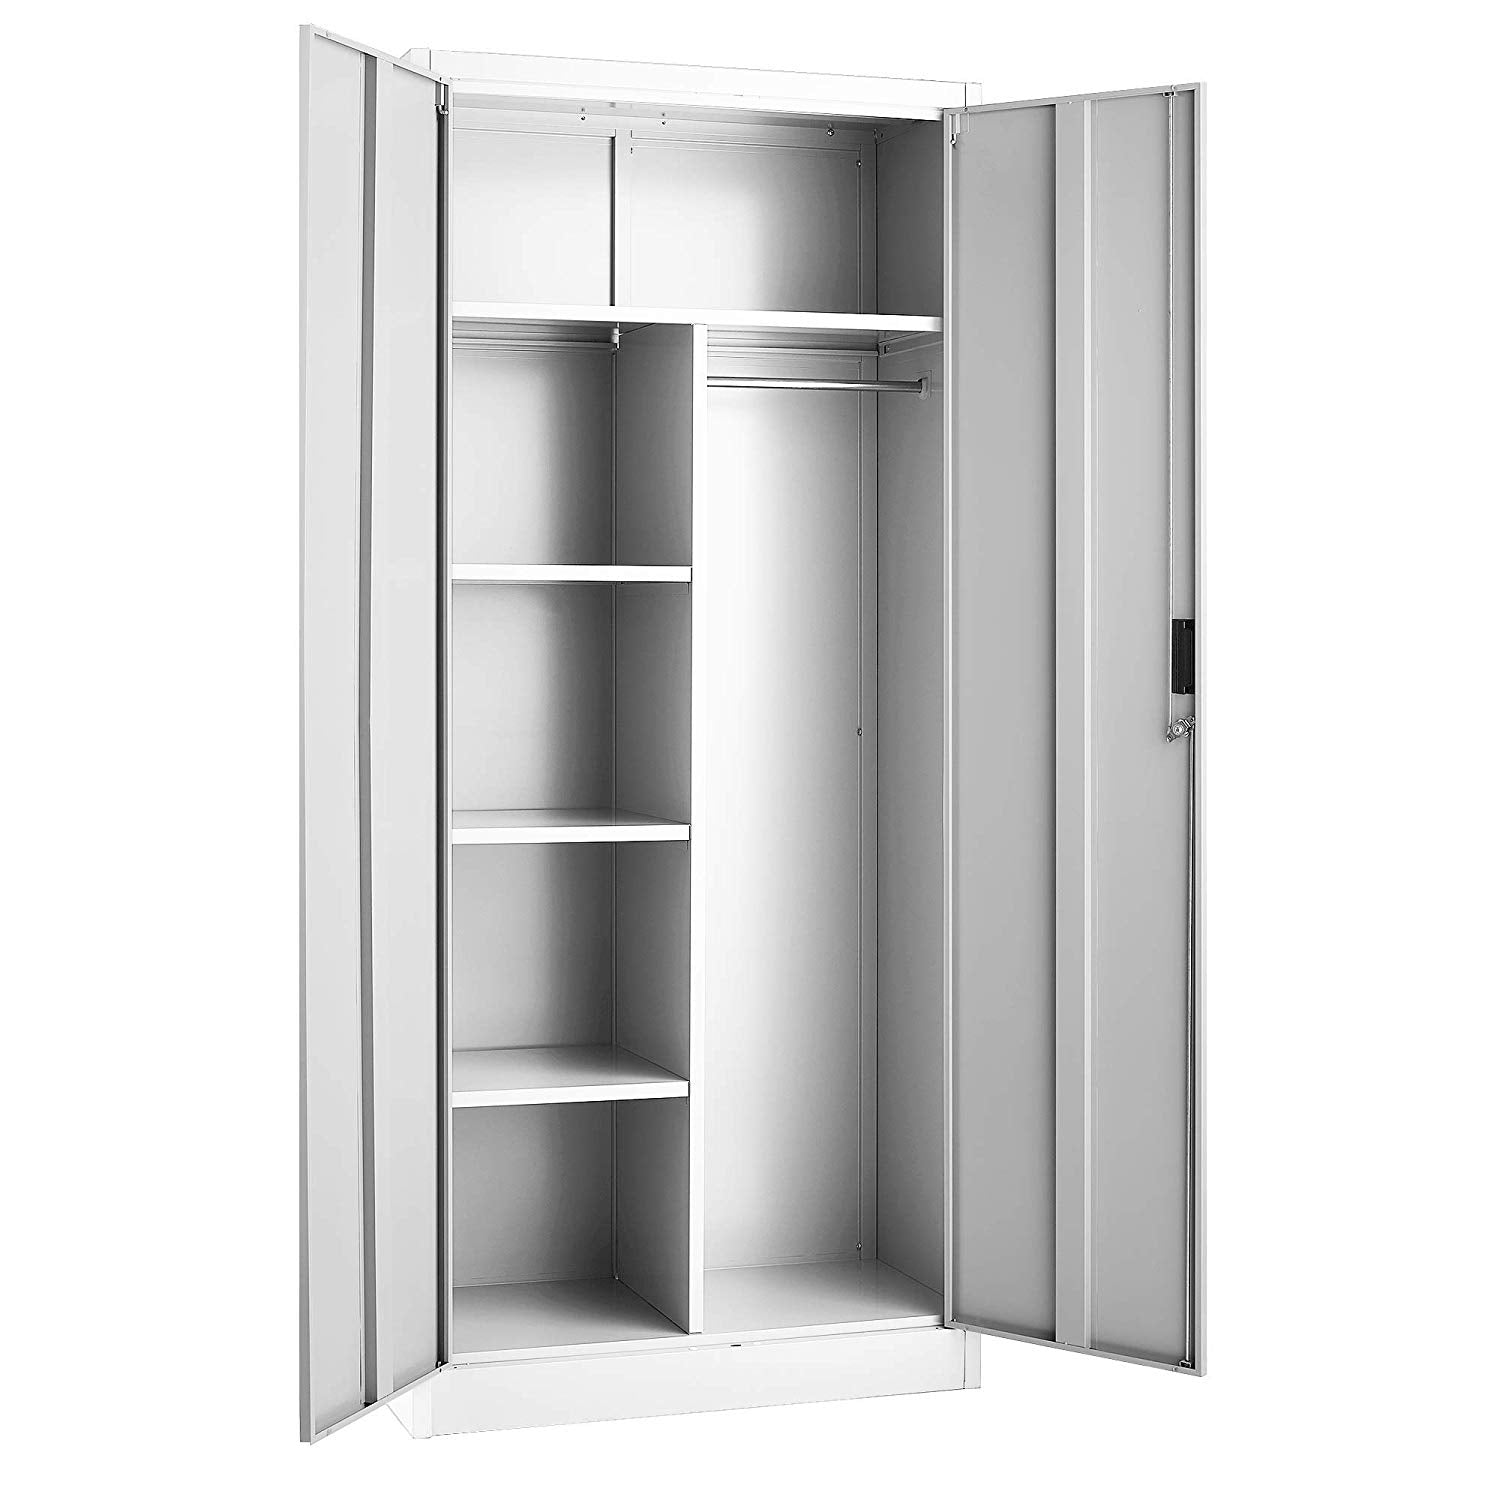 Fedmax Steel Wardrobe Cabinet (Bar on Right Side) - White